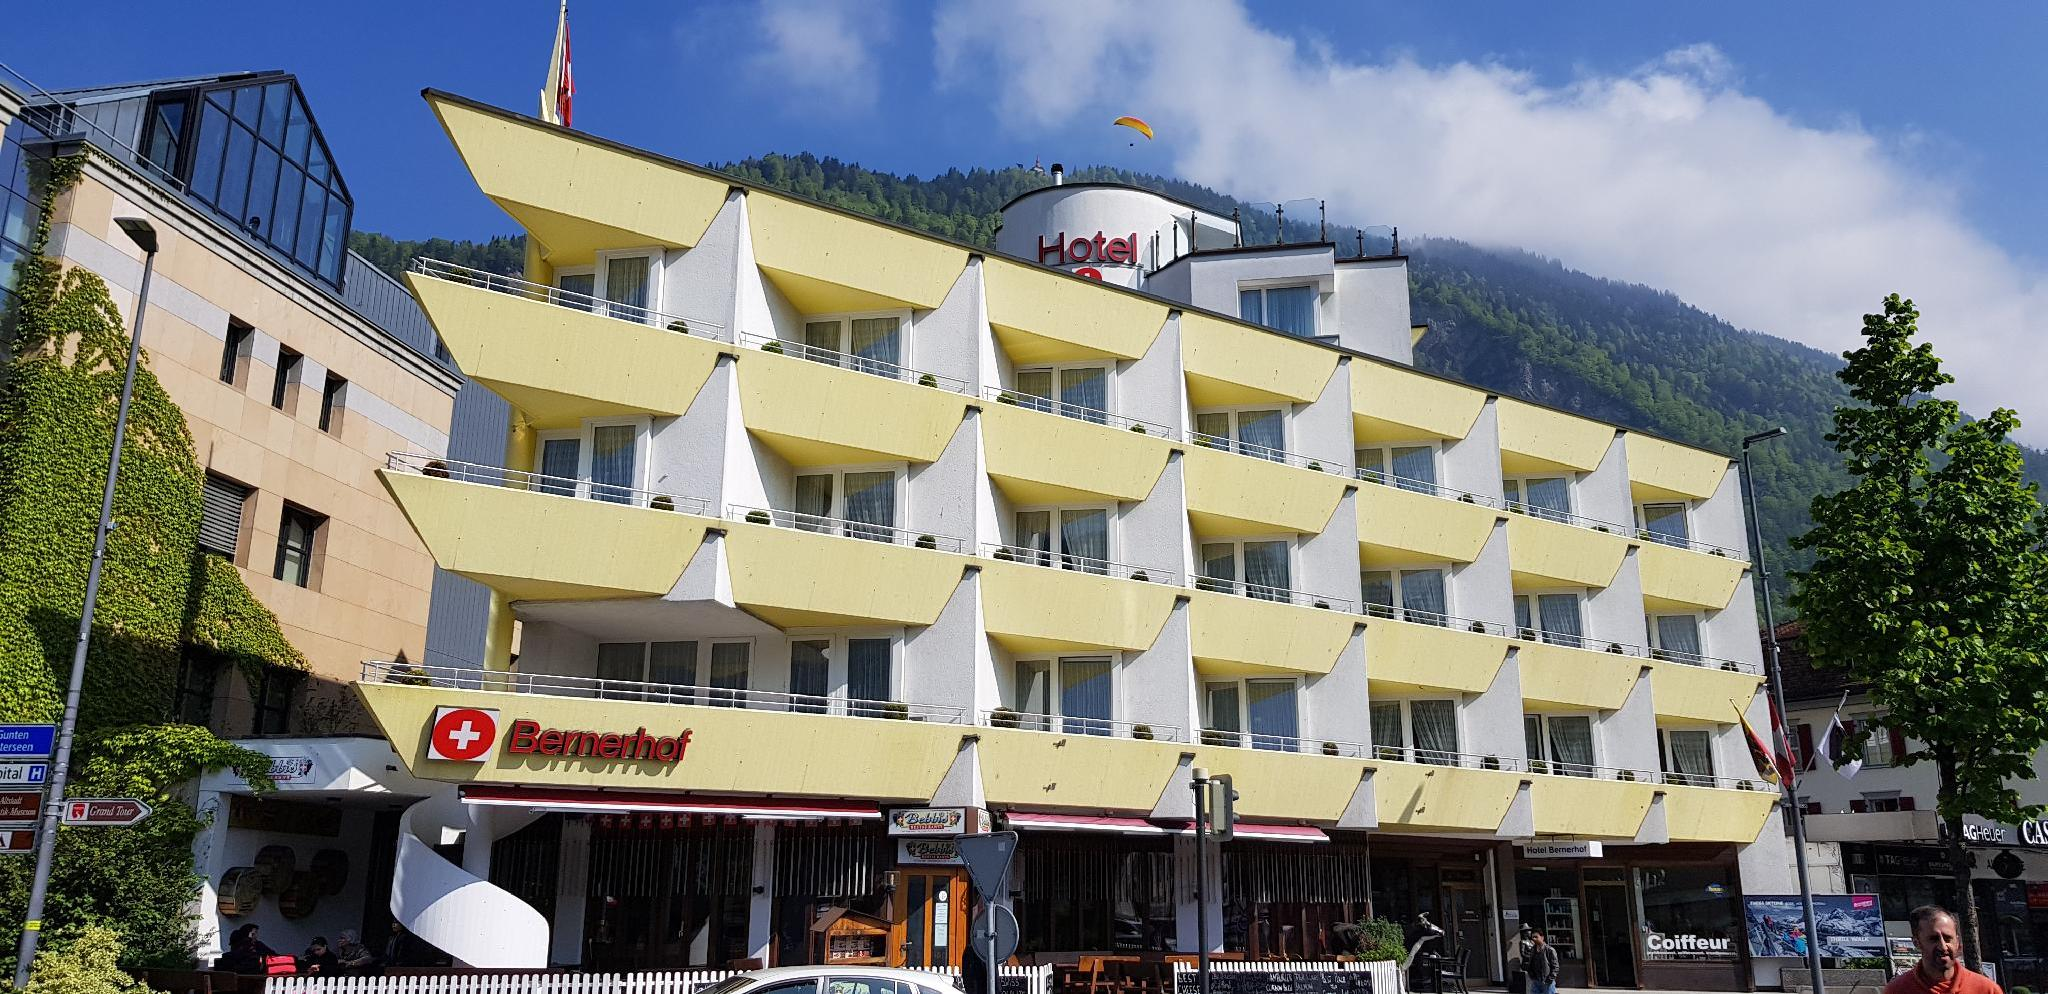 Hotel Bernerhof, Interlaken